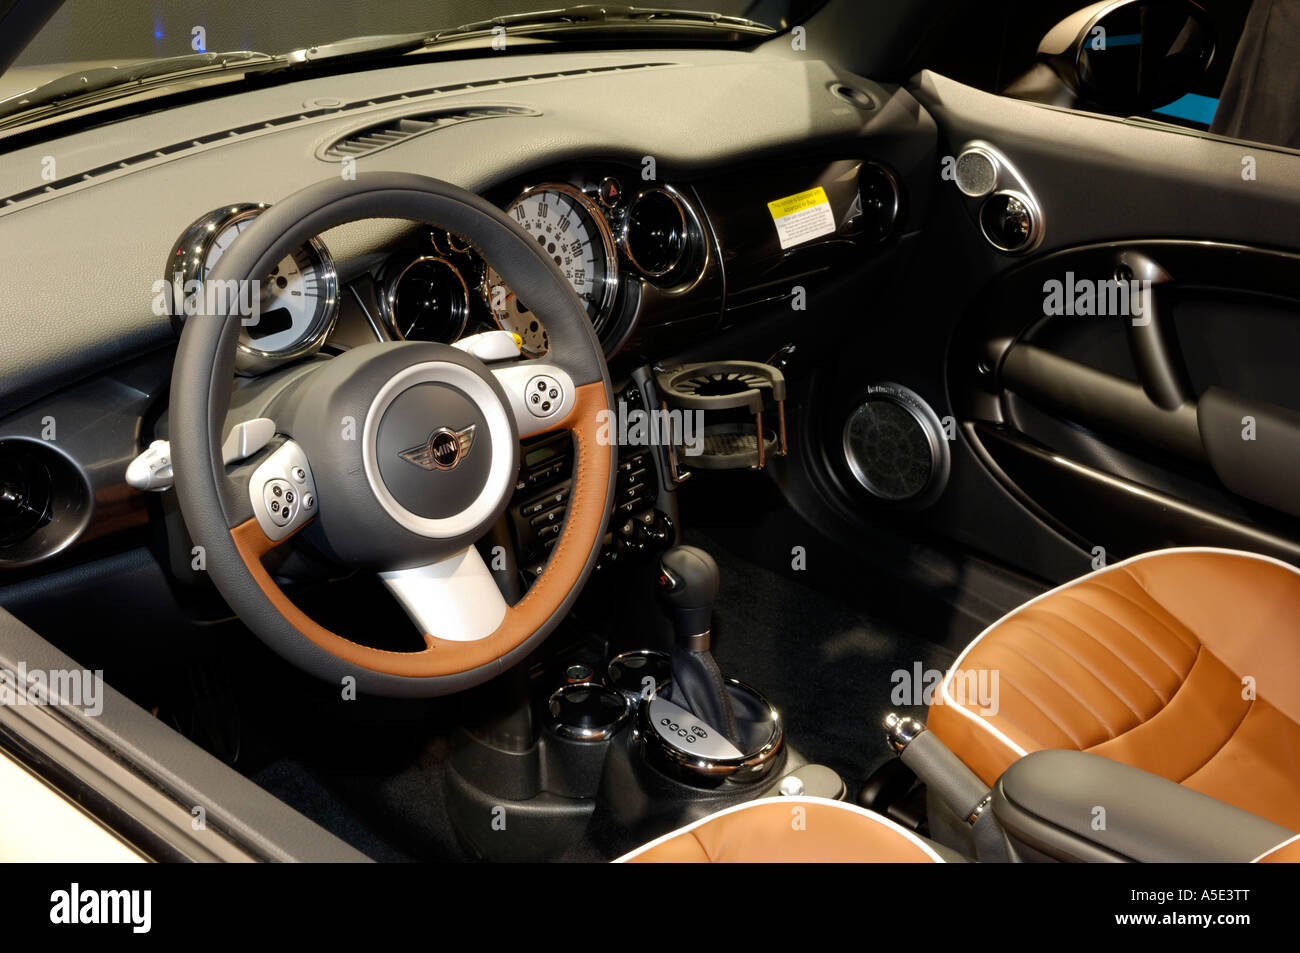 Mini Cooper S Interior Excellent Mini Cooper S Door Picture Of With Mini Cooper S Interior